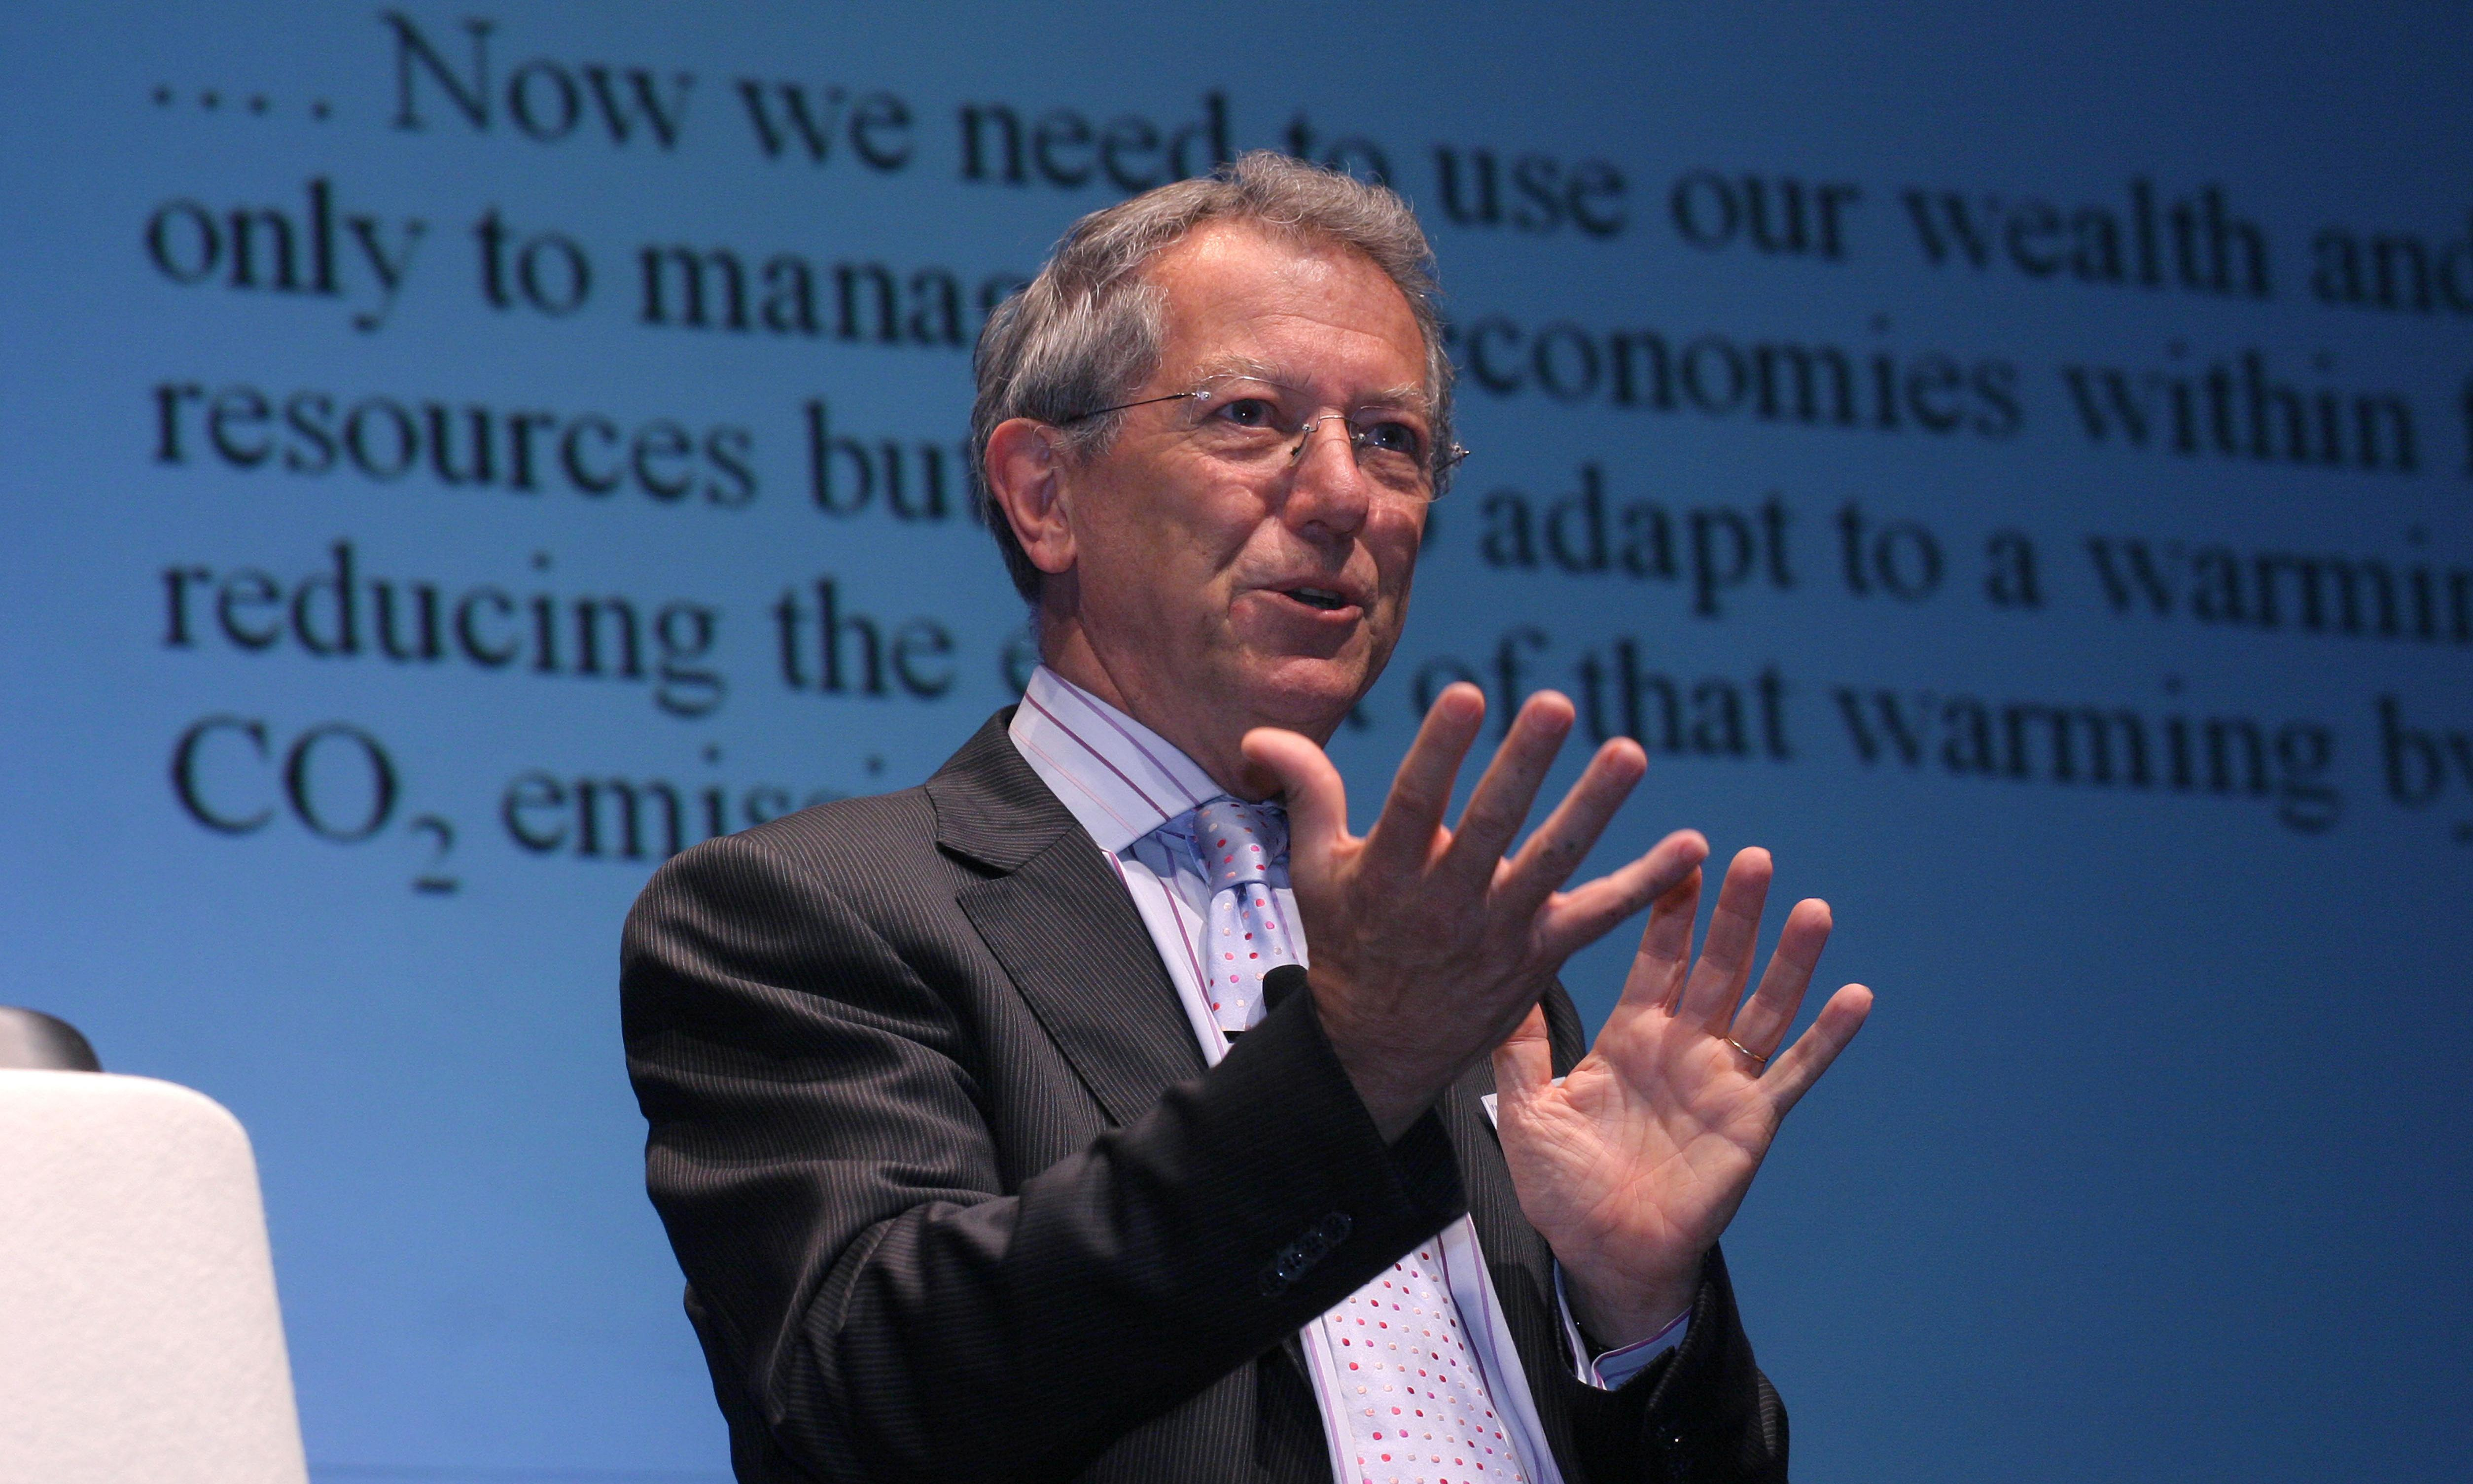 Ex-chief scientist fears for UK climate plan if Boris Johnson is PM